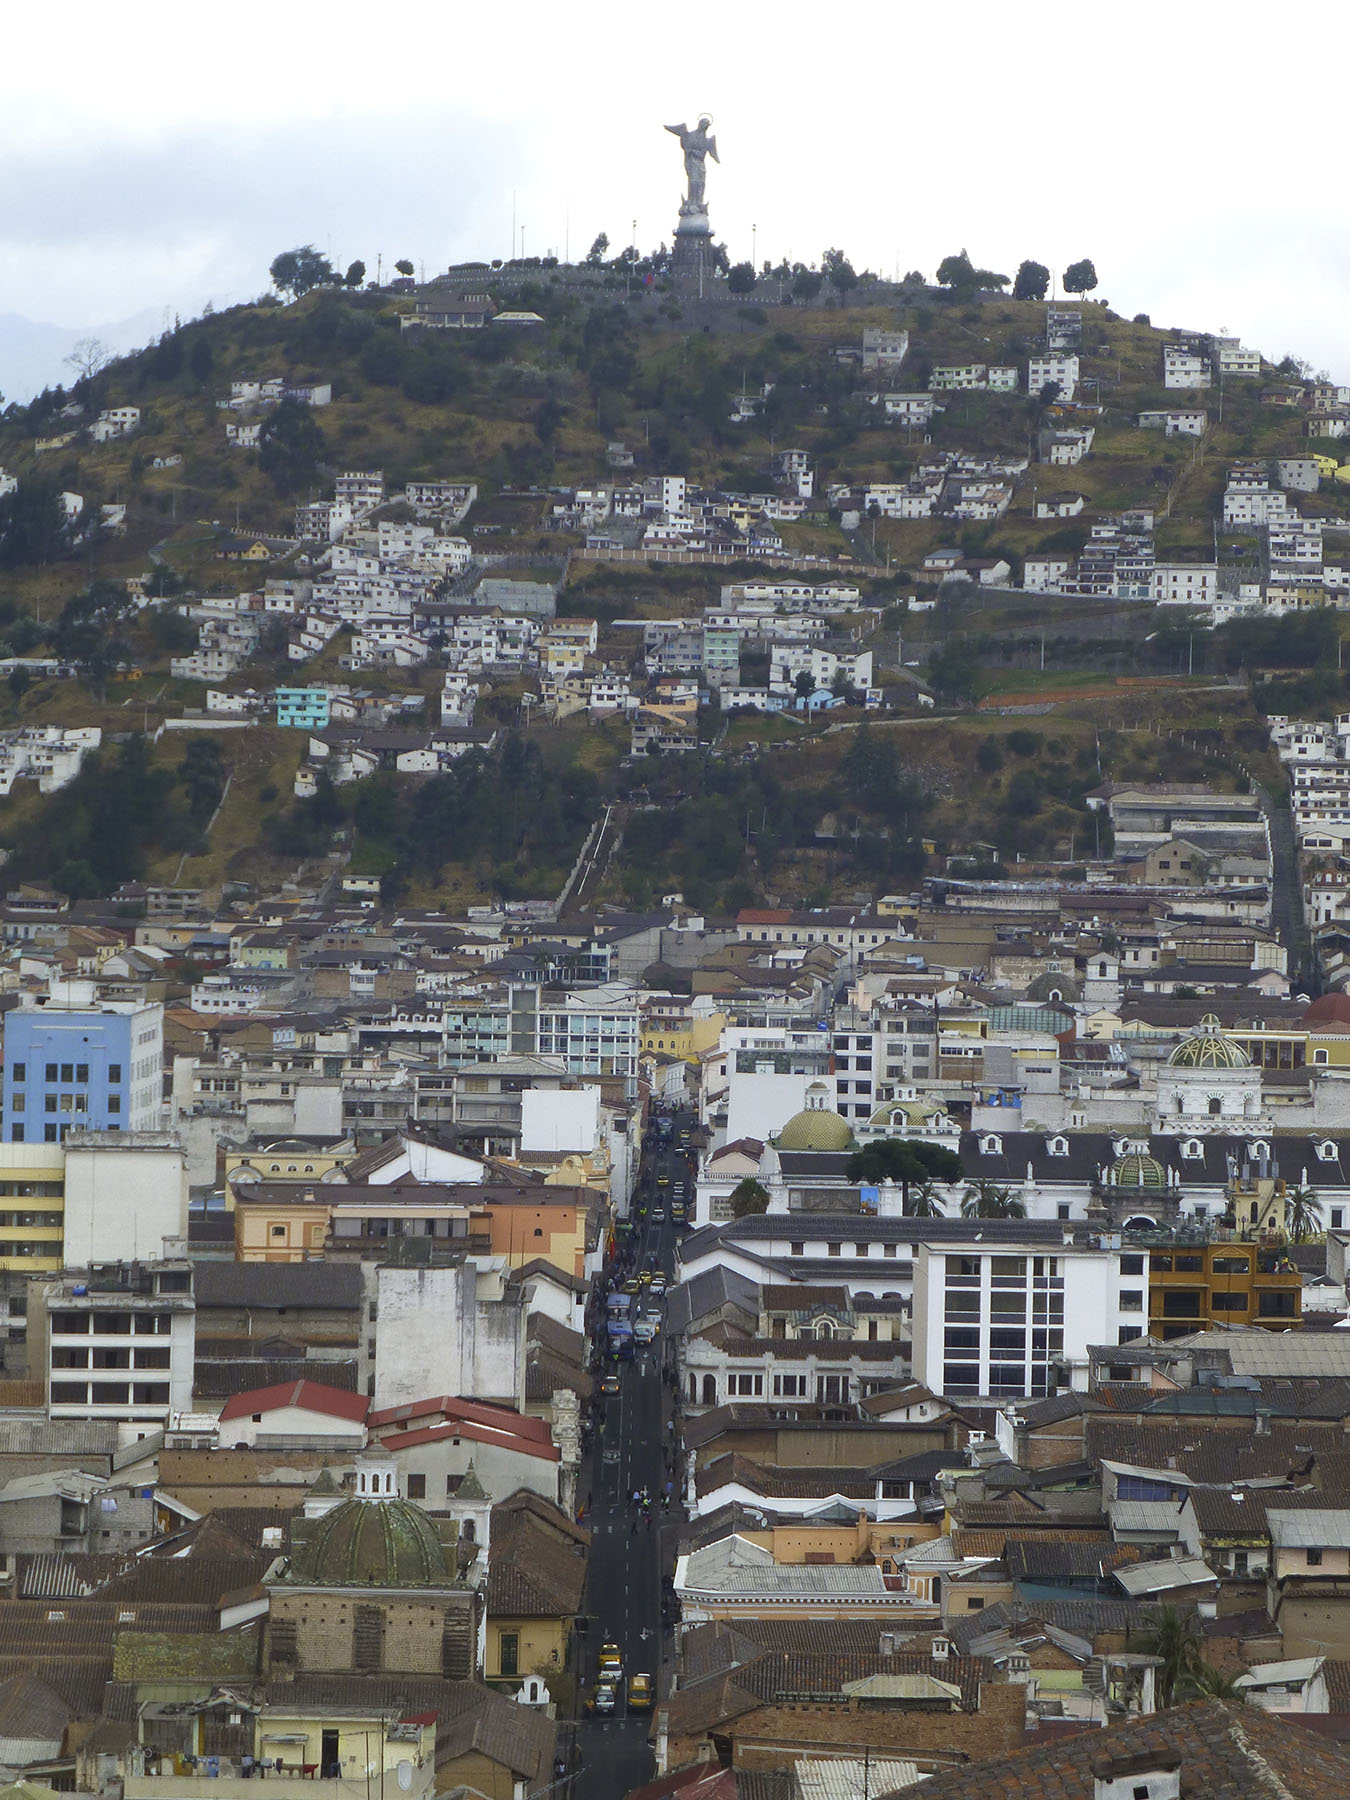 High on the hill top you can see the Virgen de Quito. You can view her from practically anywhere in the southern end of the city. Warning: Take a taxi if you want to go visit her. Even local police say you can get robbed if you walk up or down the hill!